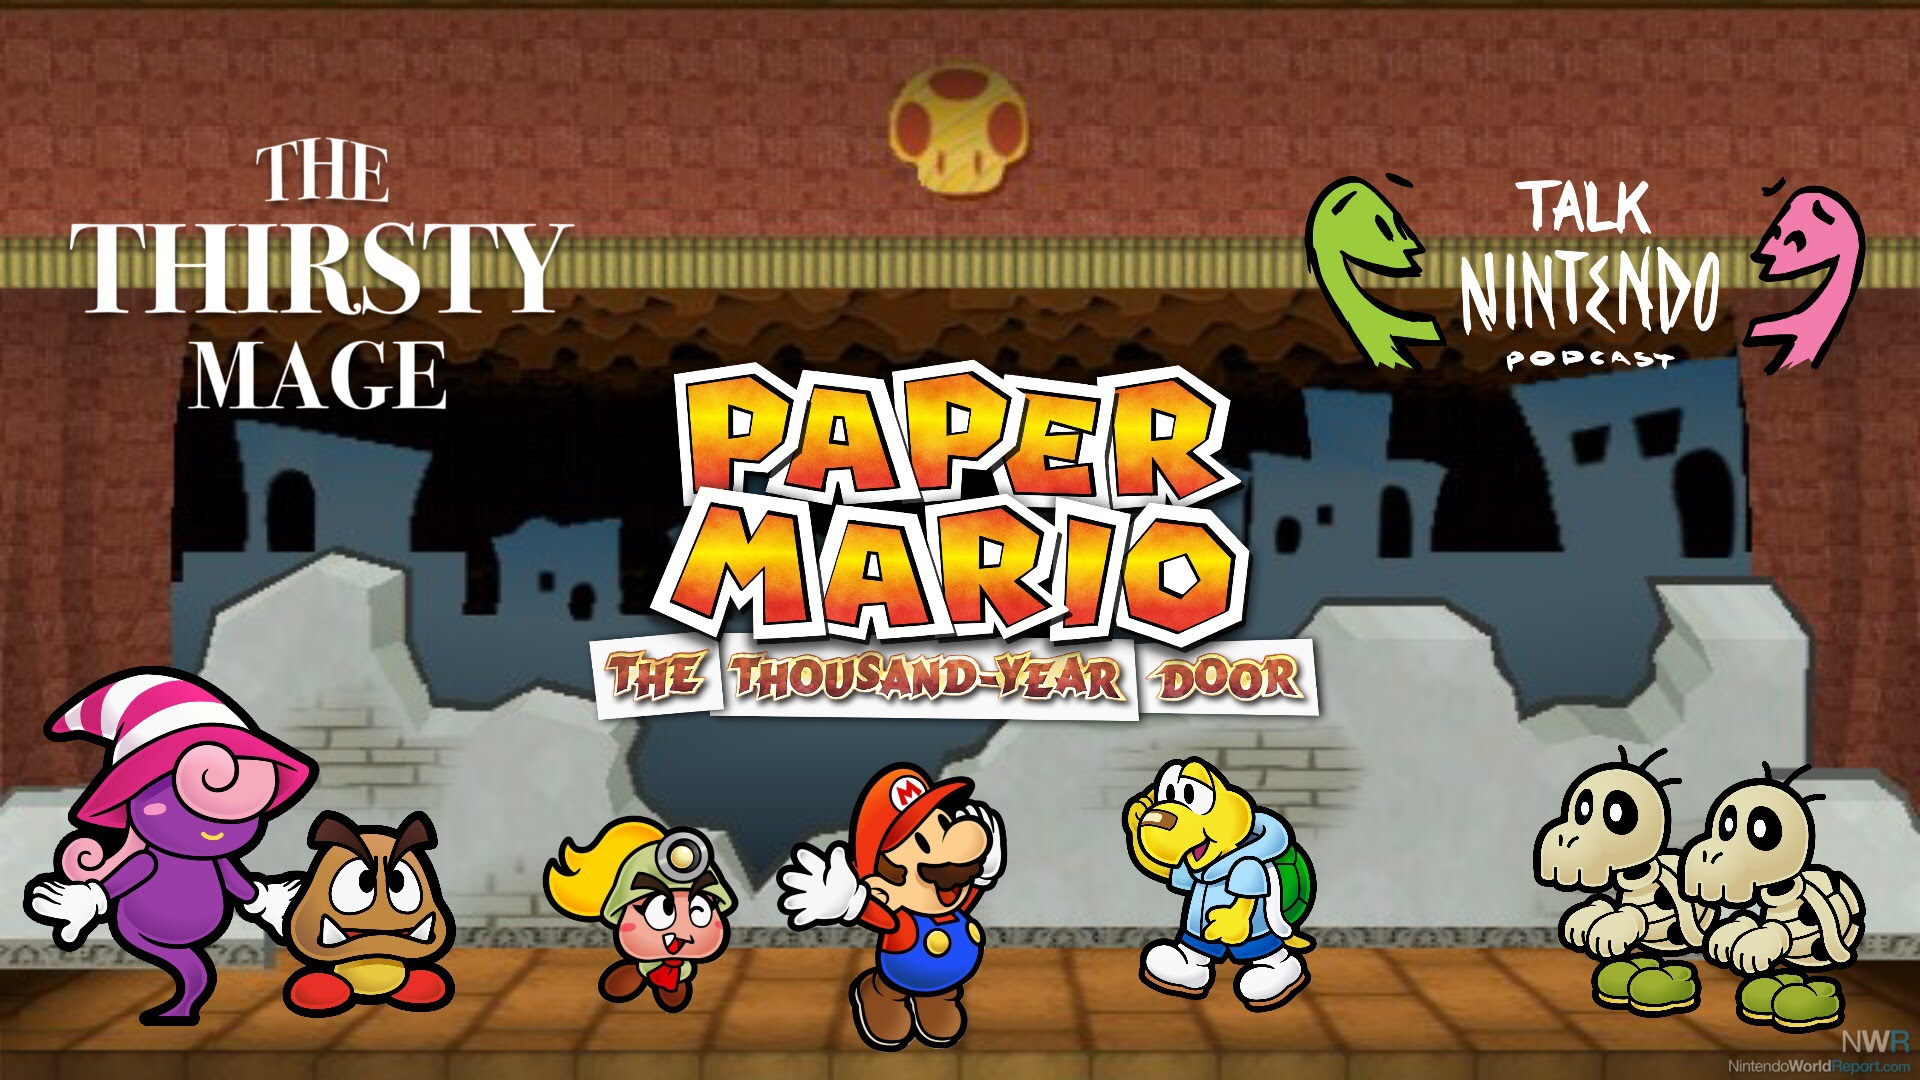 The Thirsty Mage Paper Mario And Slamming The Thousand Year Door